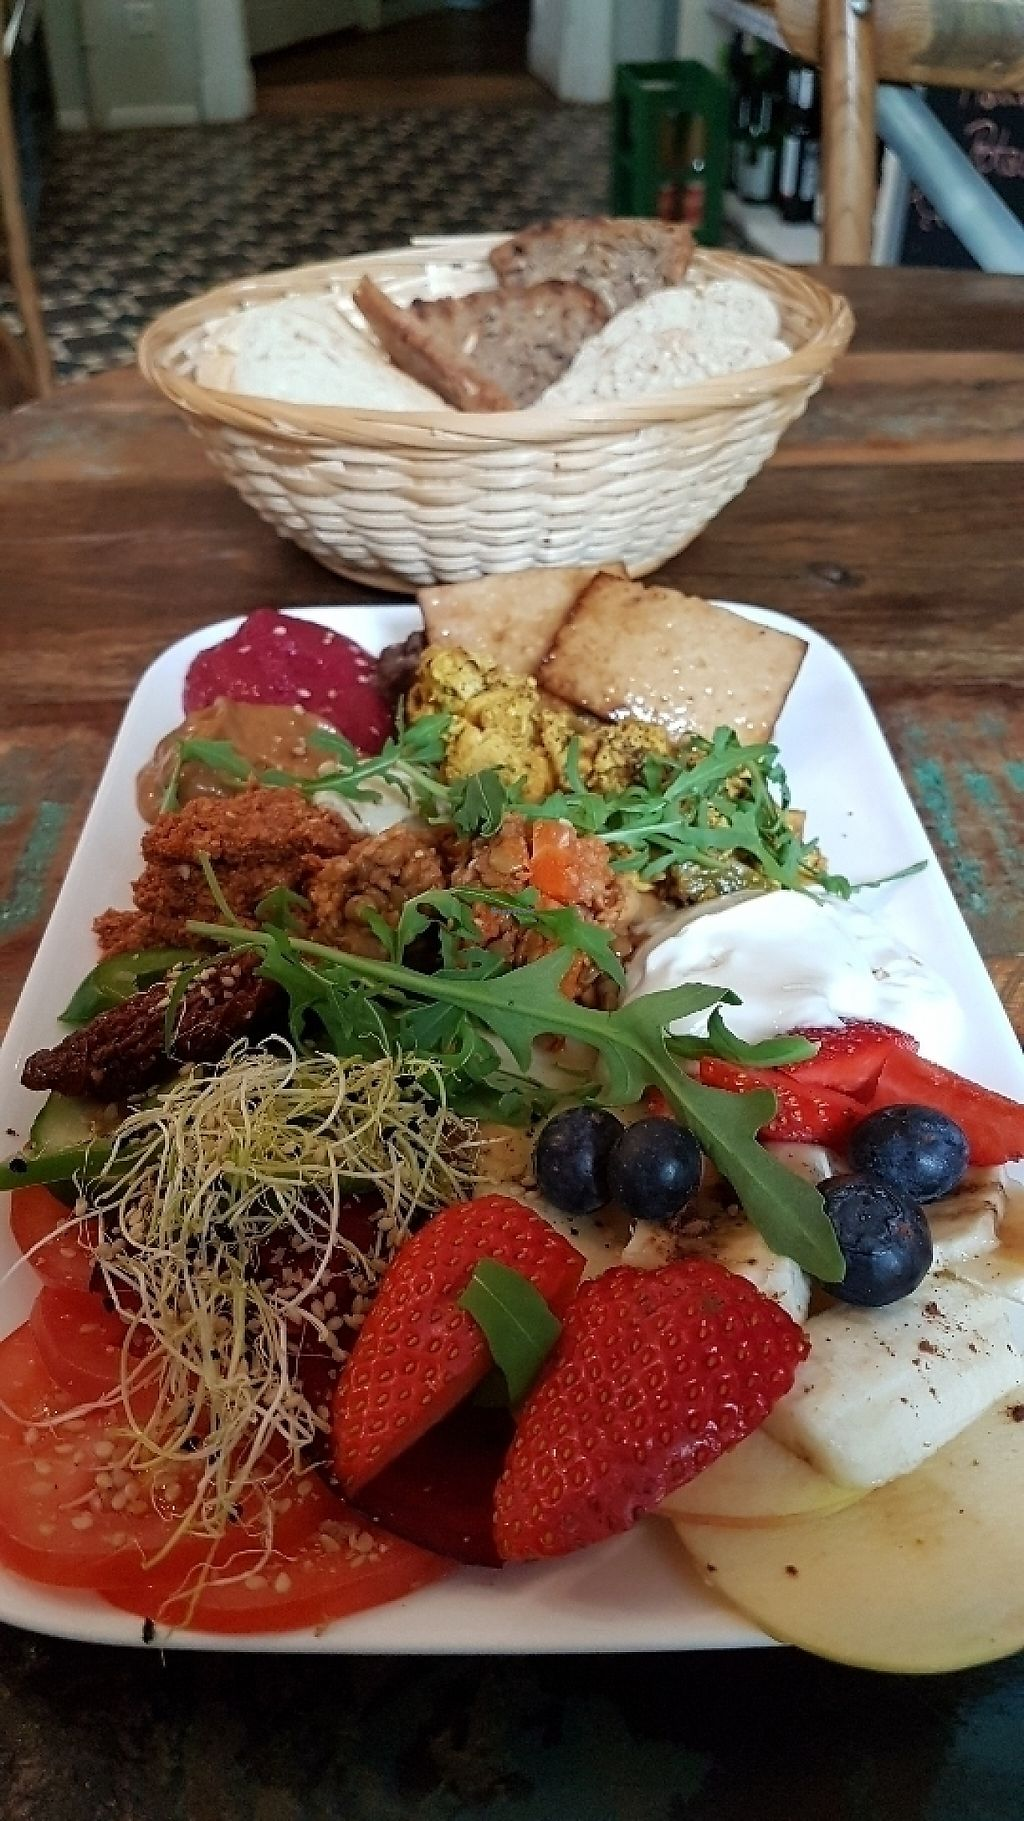 """Photo of Valladares  by <a href=""""/members/profile/unabashed"""">unabashed</a> <br/>Breakfast platter.  <br/> May 26, 2017  - <a href='/contact/abuse/image/54507/262755'>Report</a>"""